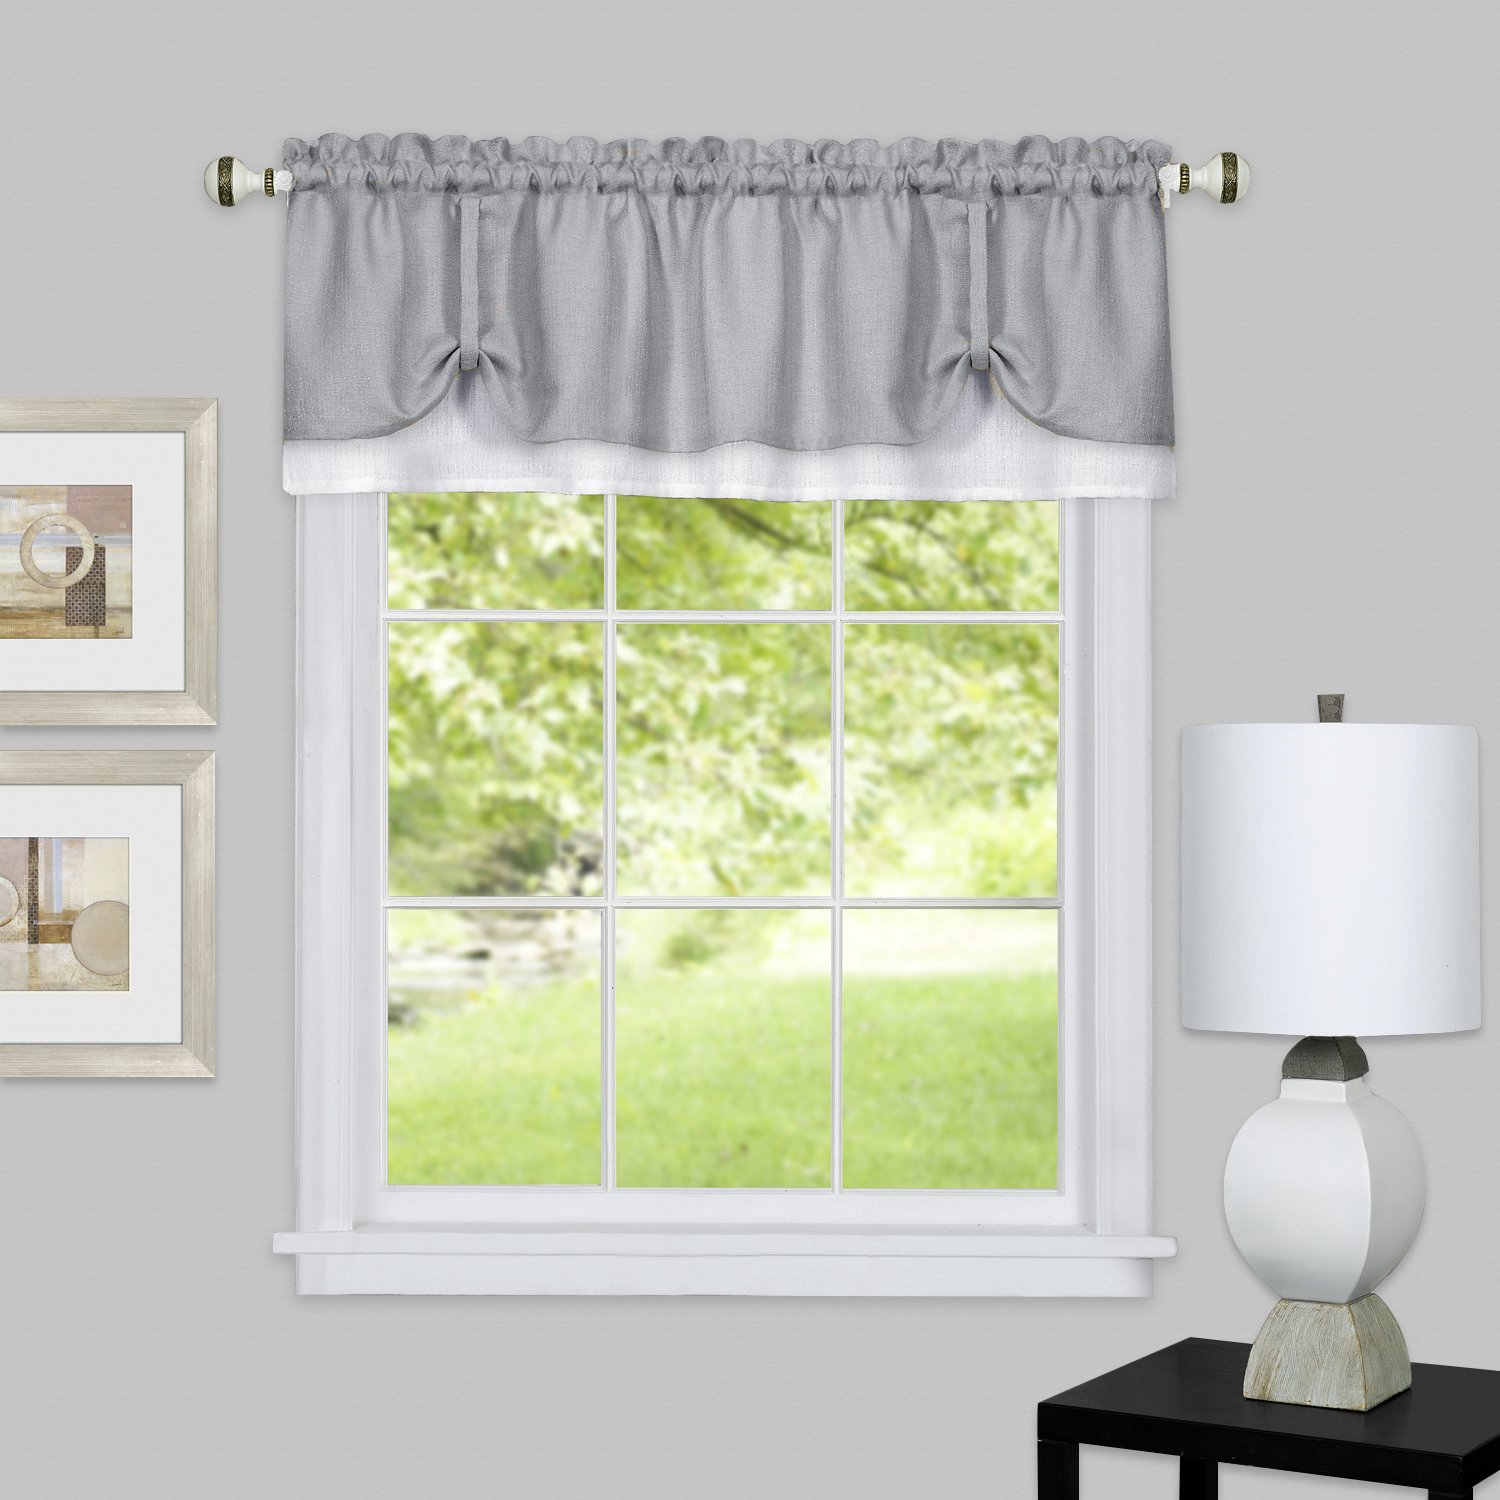 Shop Amazon.com | Window Valances